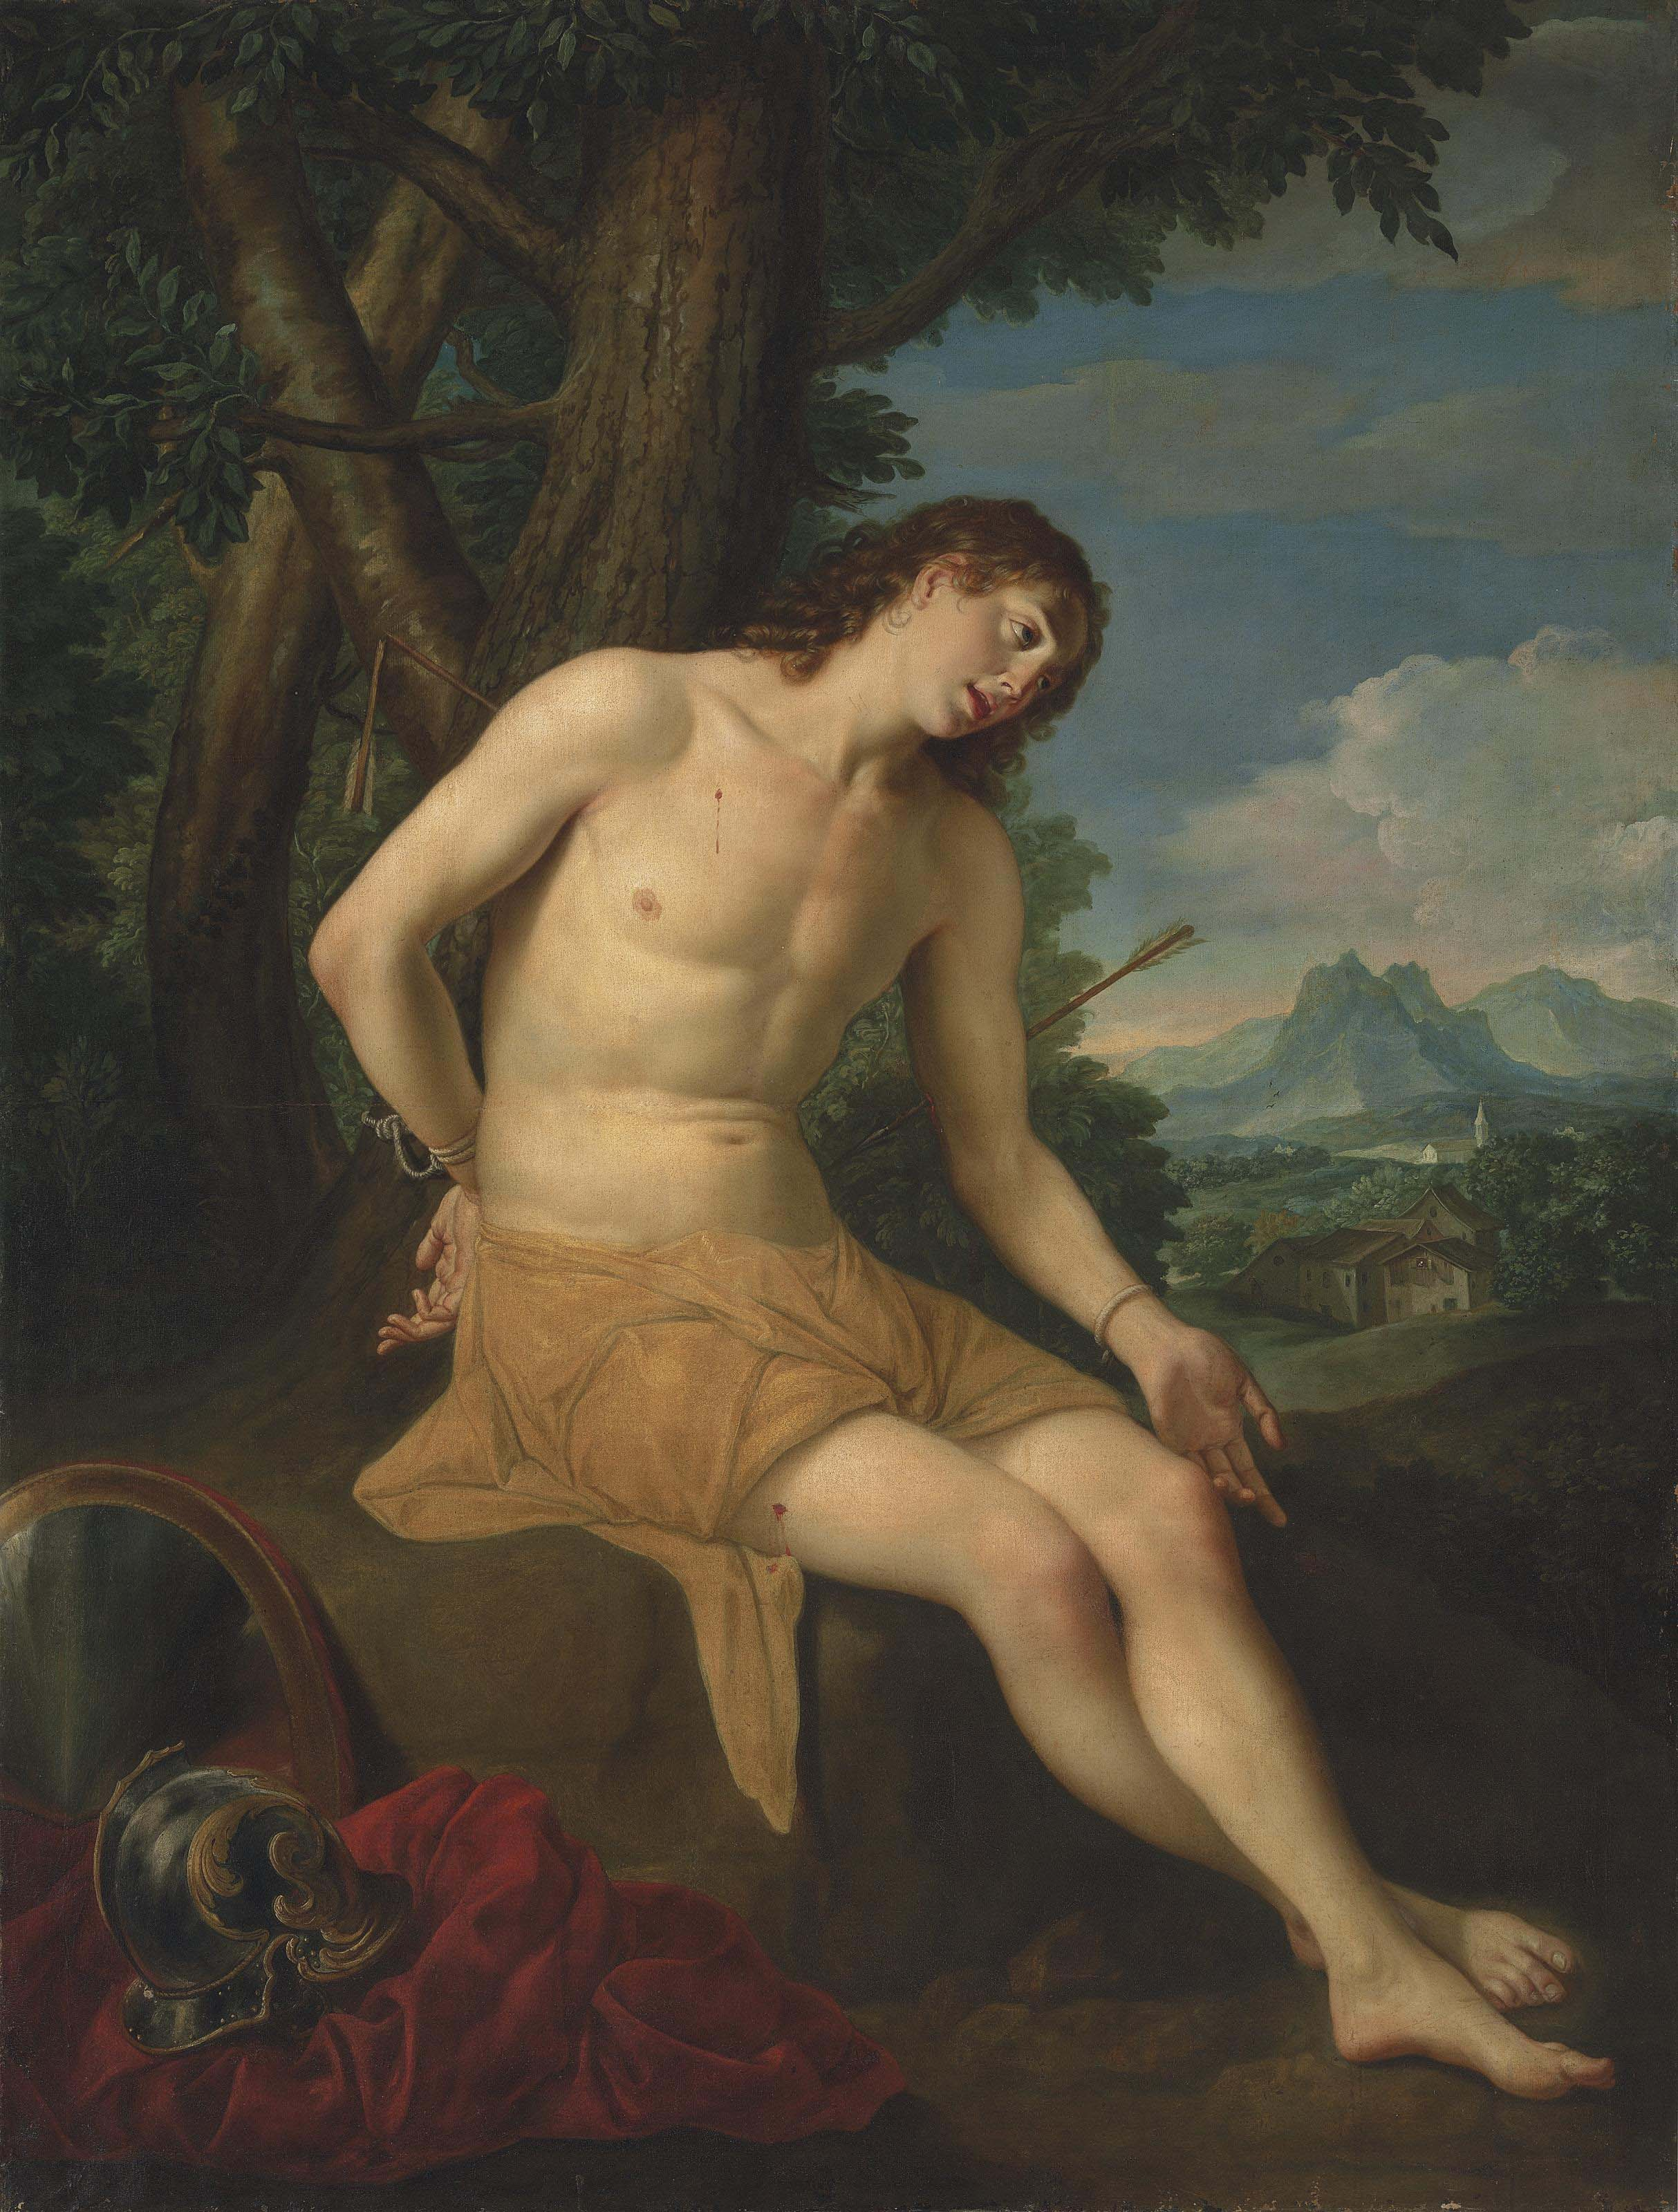 Saint Sebastian, in an extensive mountainous landscape